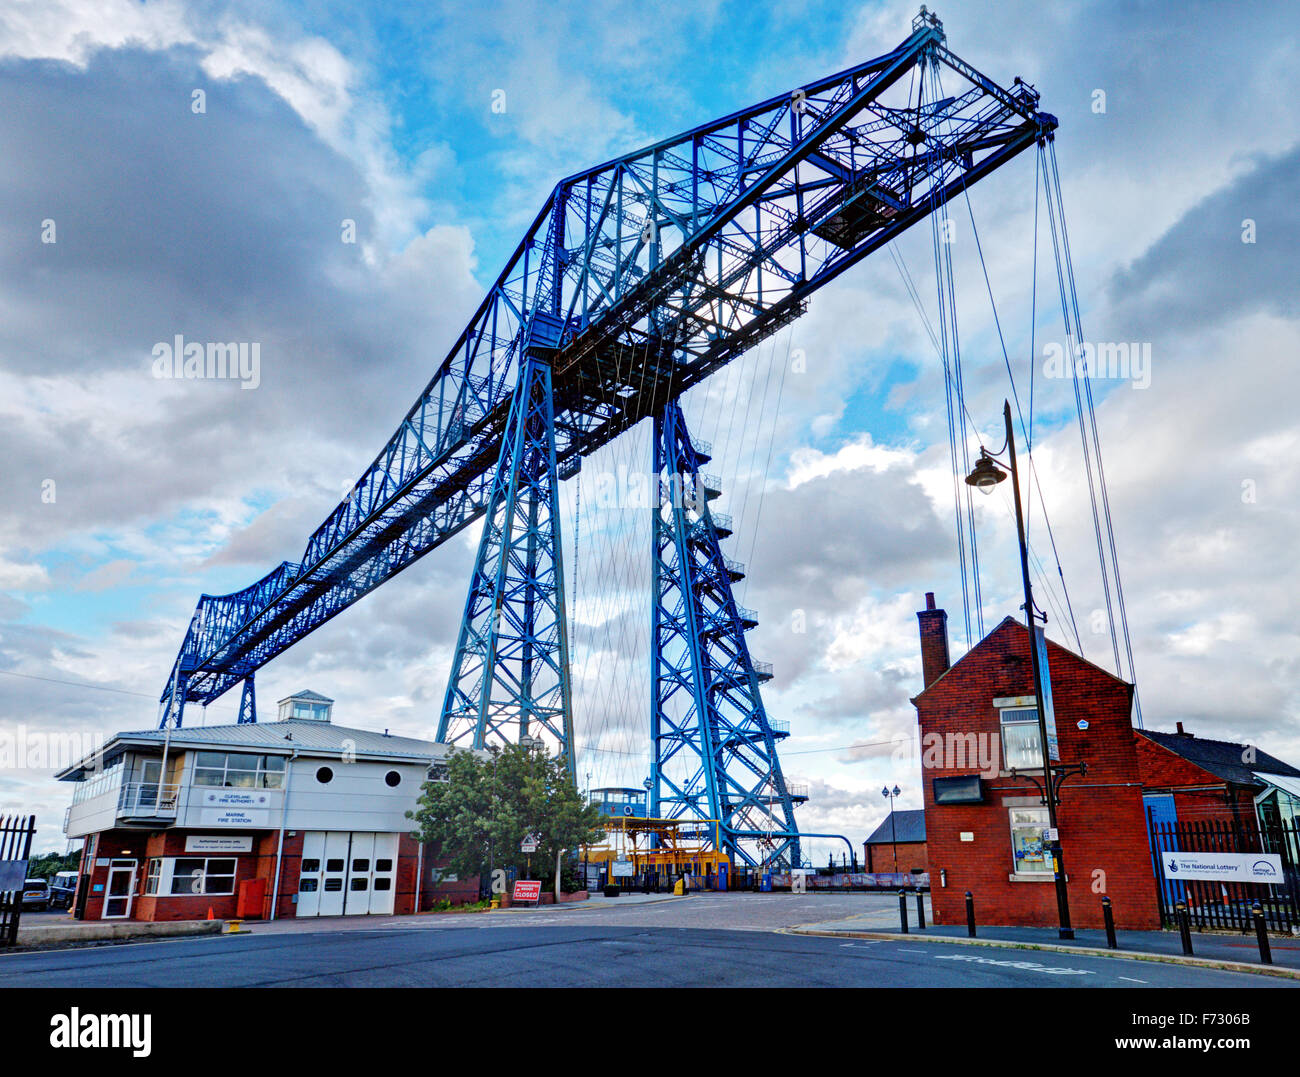 Teesside Transporter Bridge: a dominant crane-like structure the transports cars and passengers by a cable suspension - Stock Image